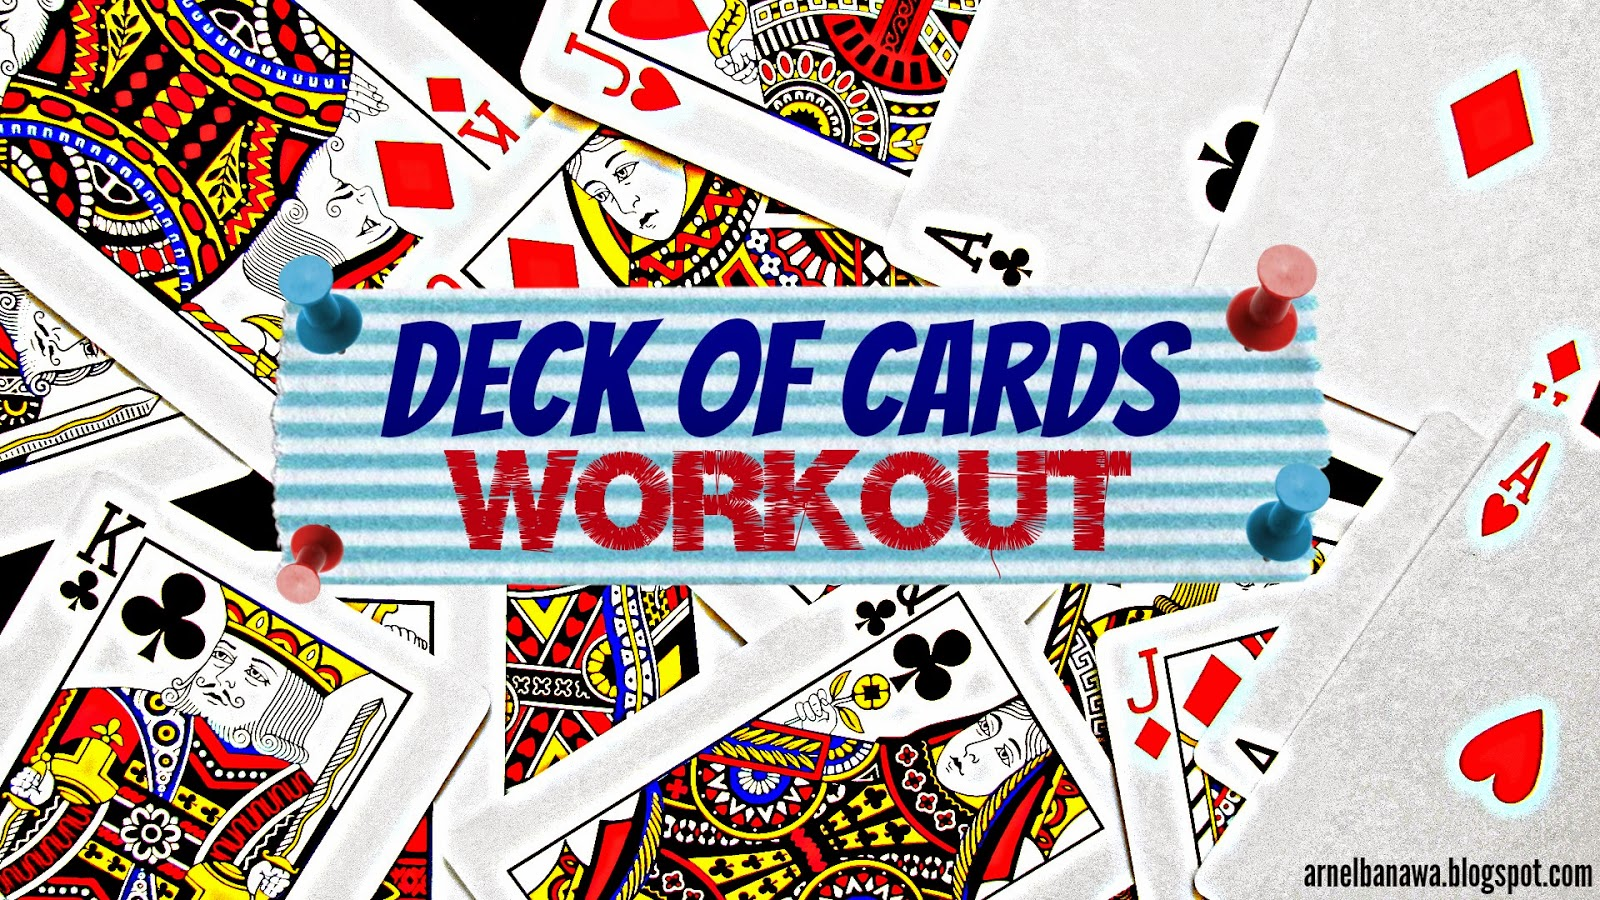 Deck of Cards Workout - Playout the Game